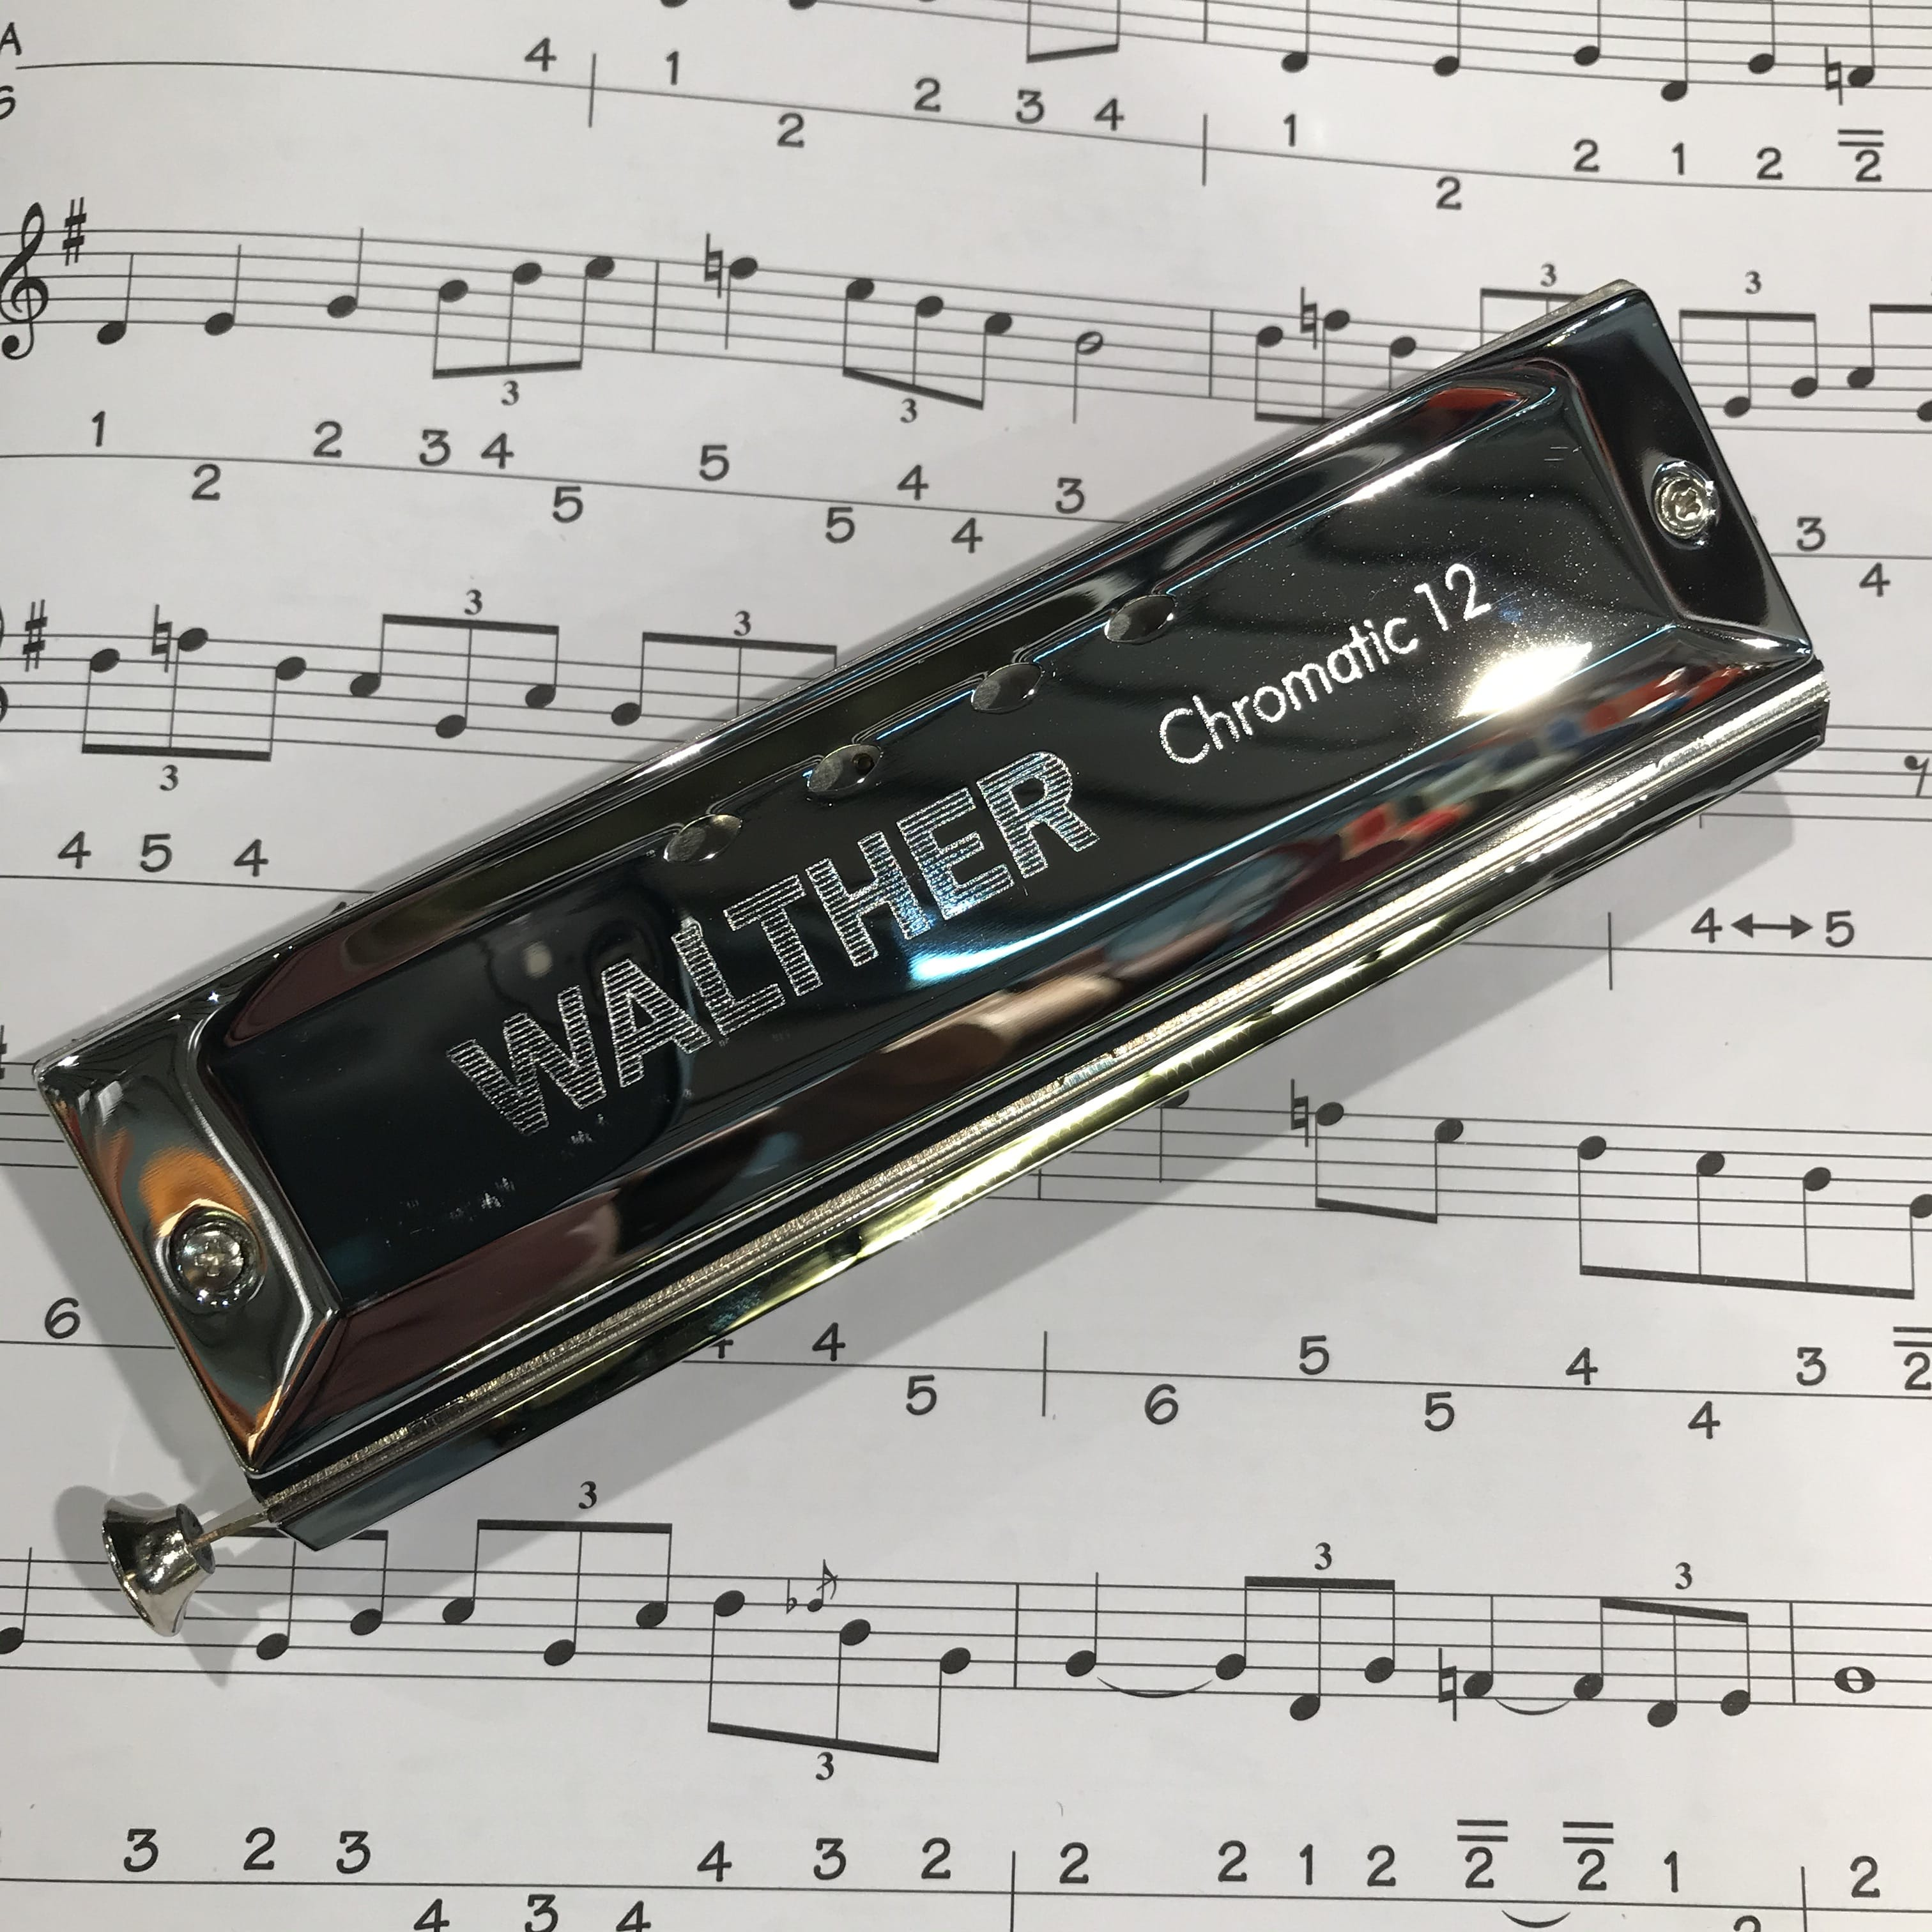 Walther Chromatic 12